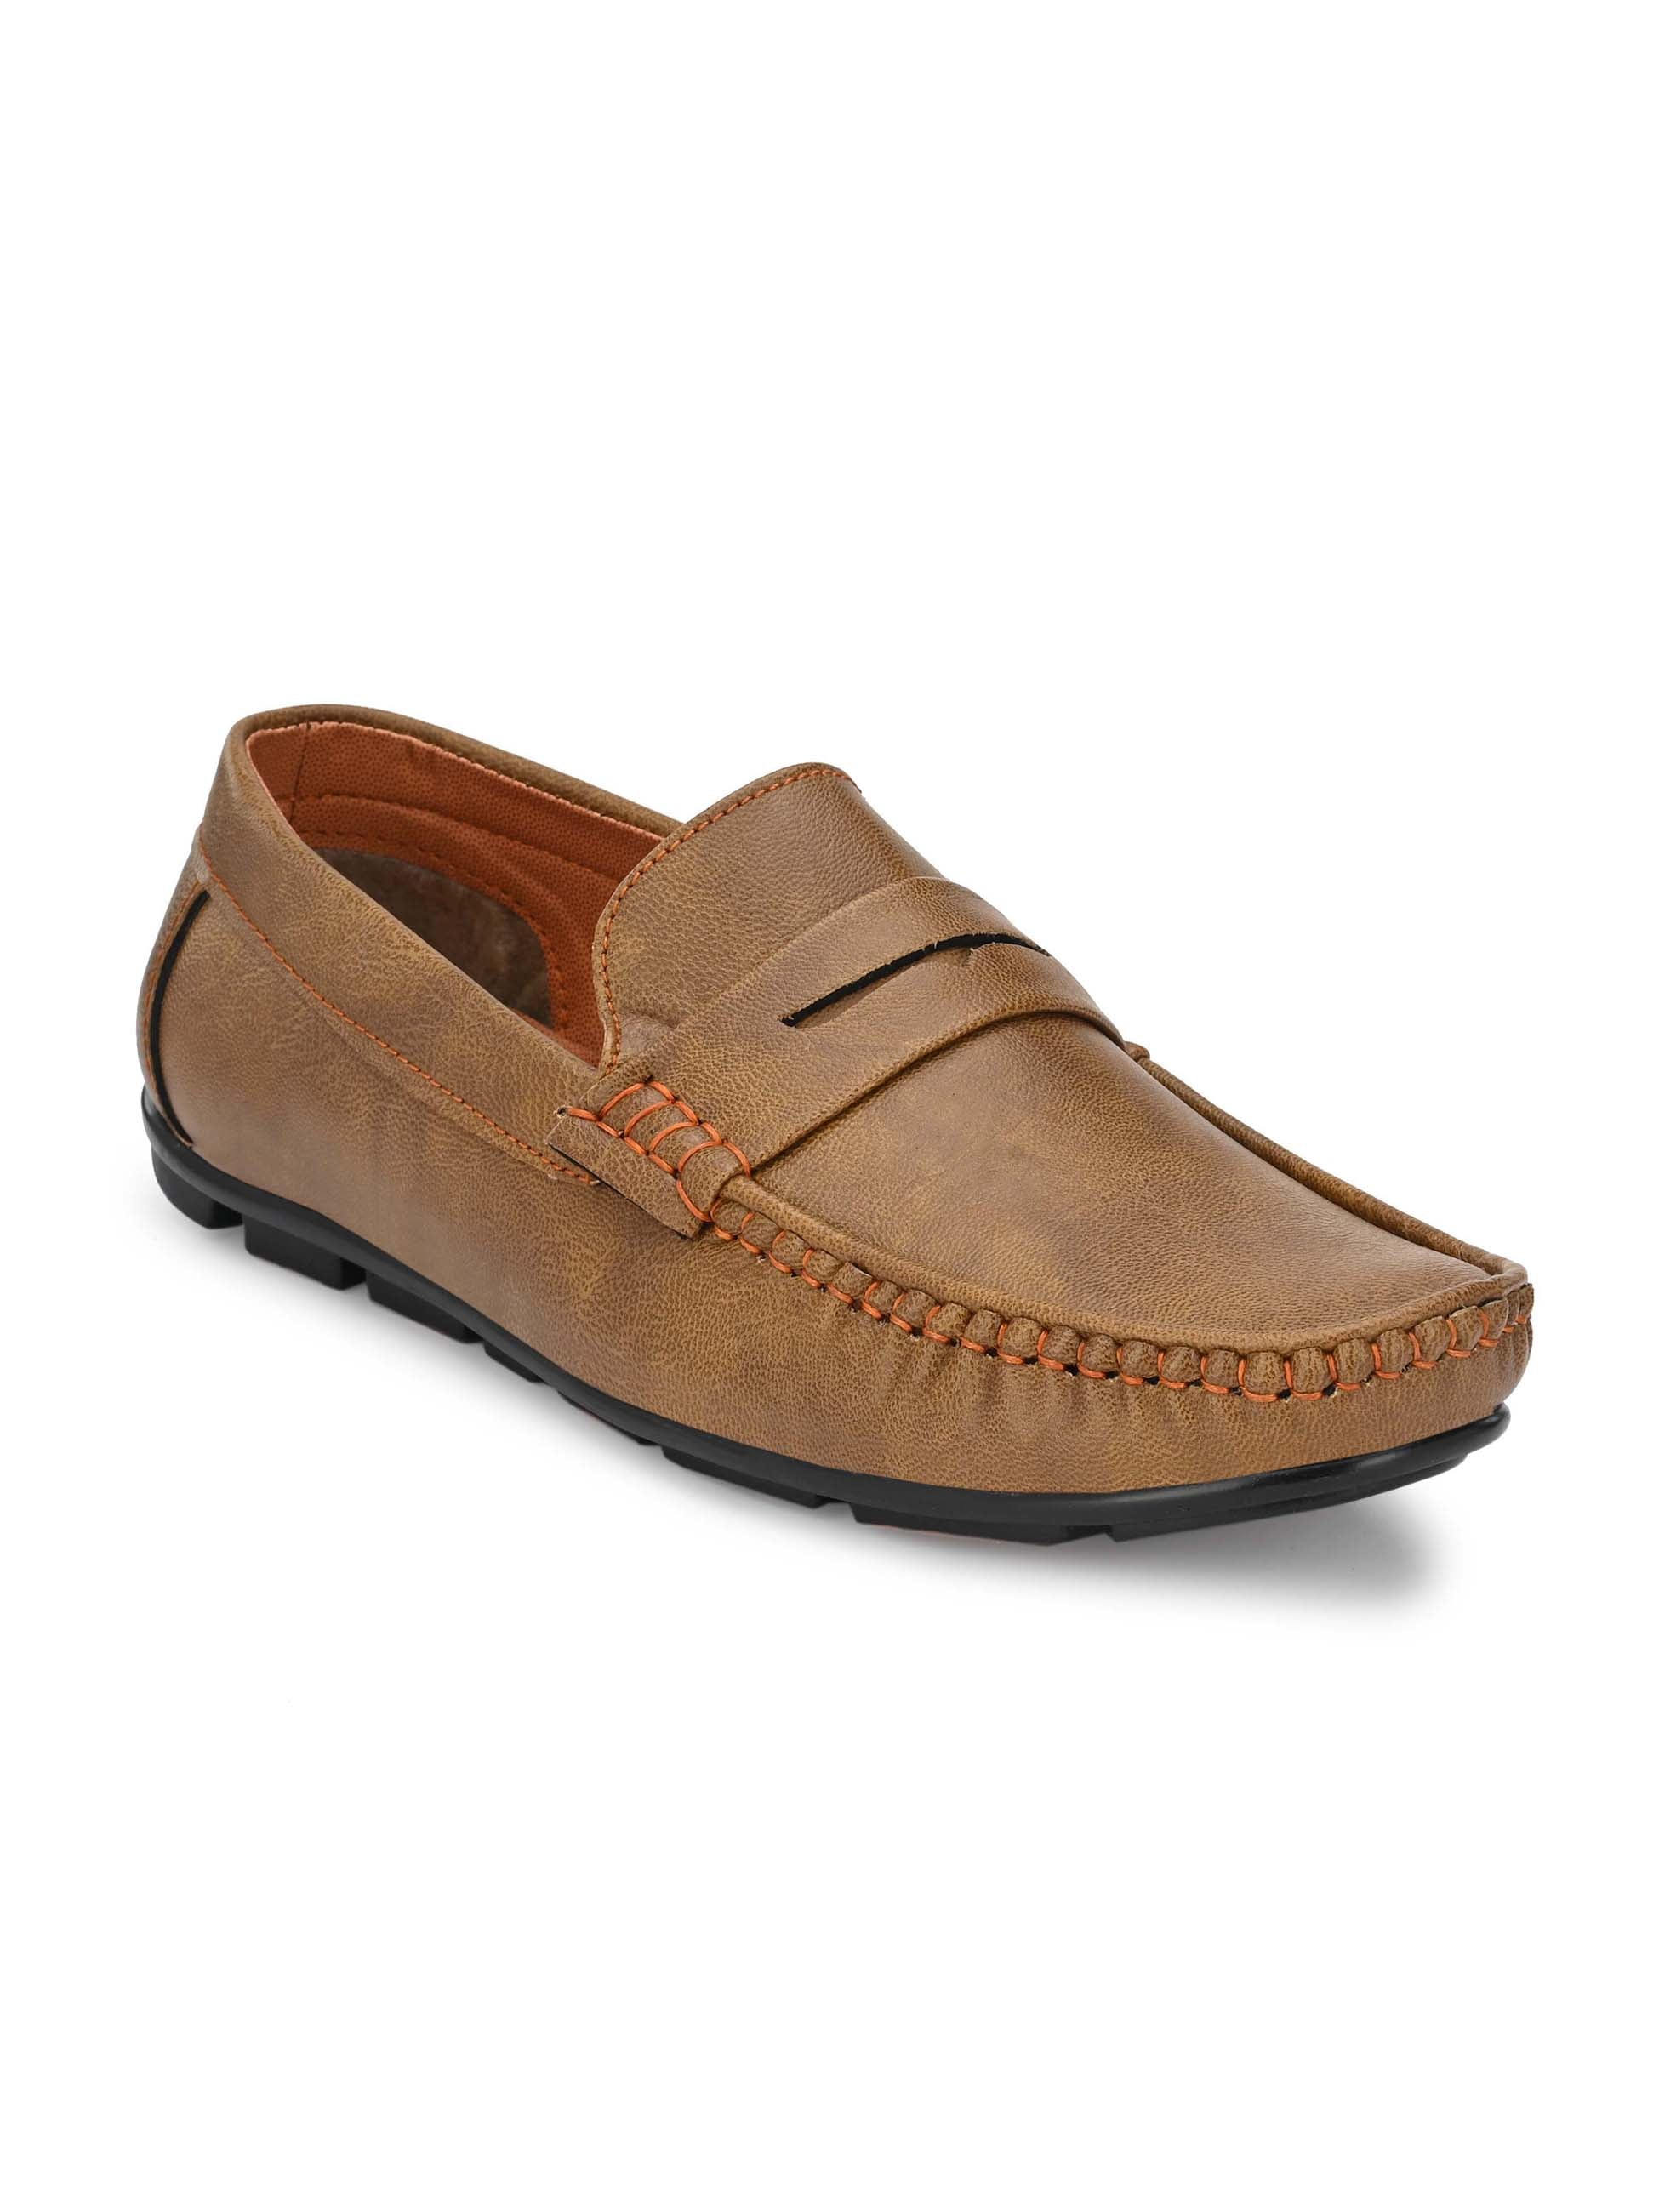 Calm Camel Comfort Loafers - shoegaro